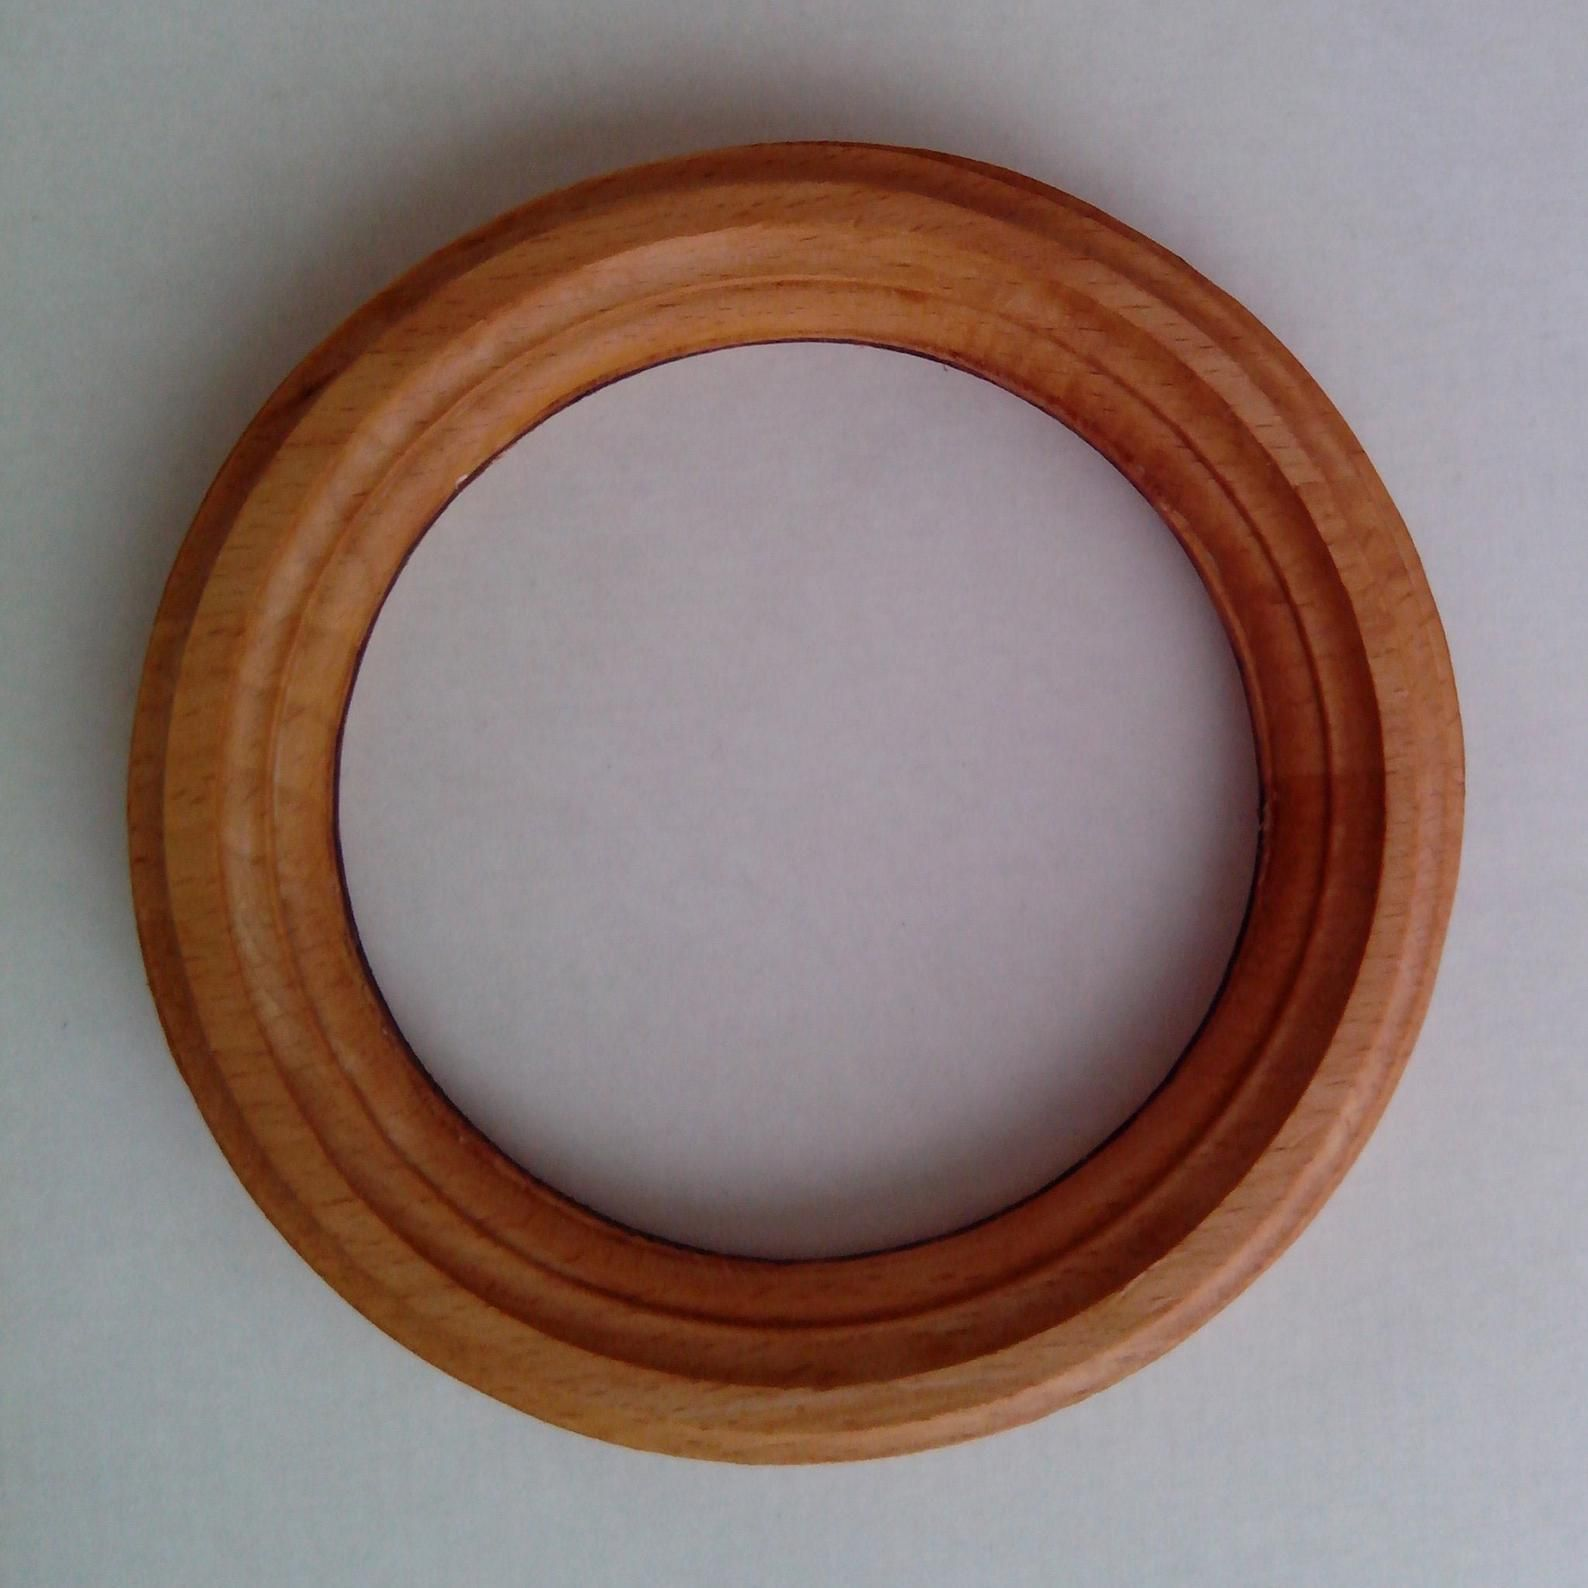 Round Wooden Frame 3 5x3 5 Approximate Size Round Circle Etsy